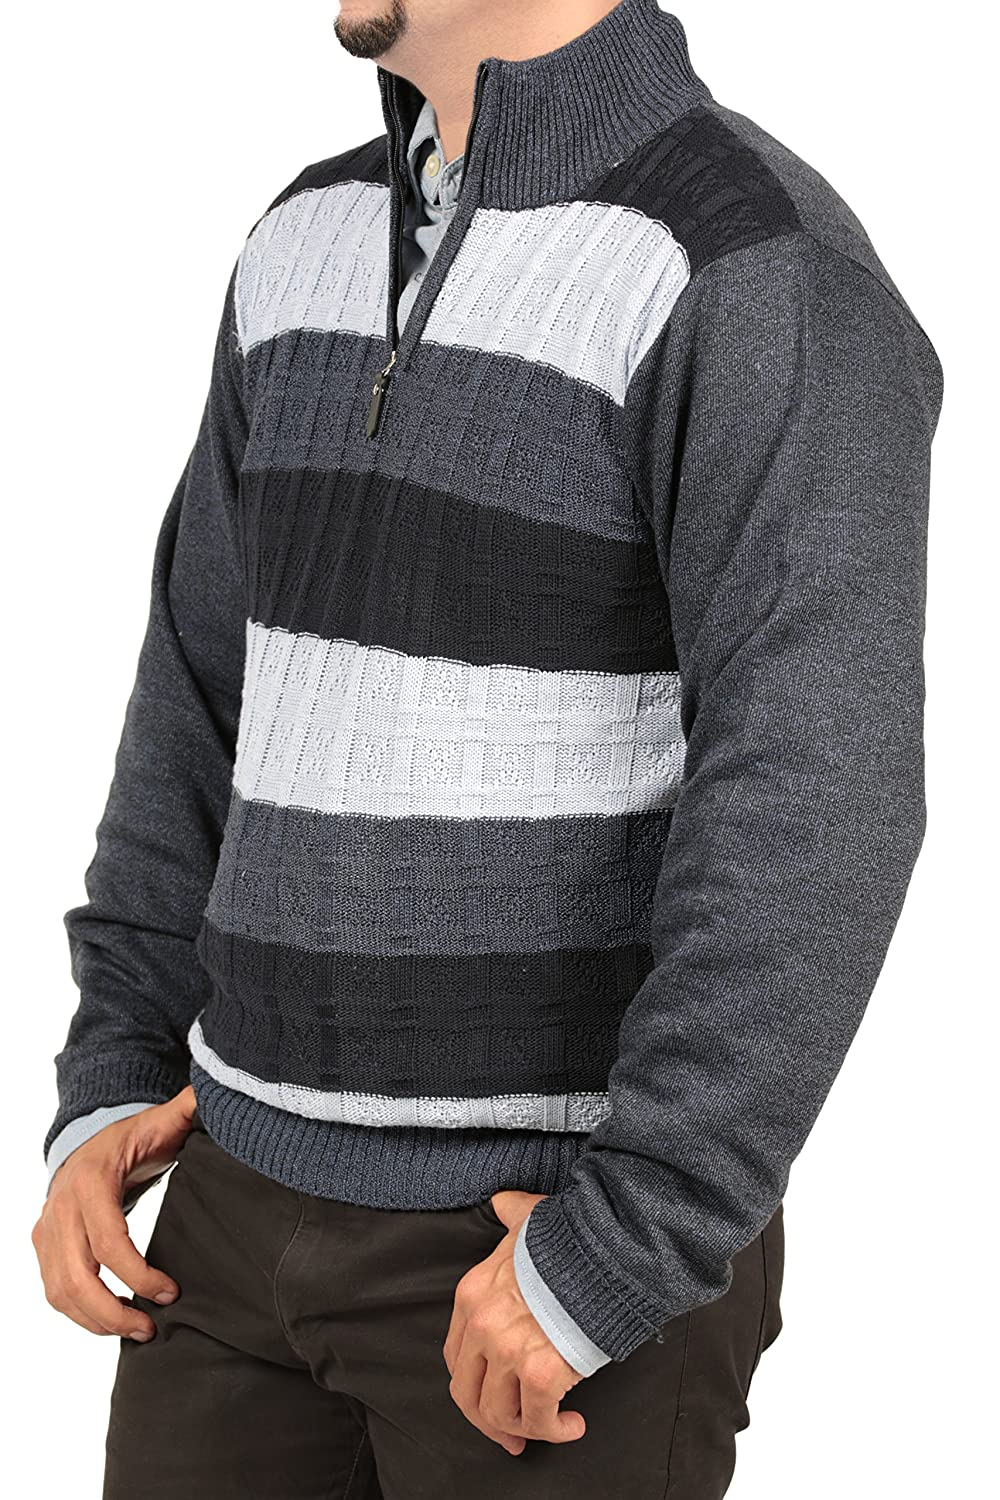 Ingear Half Zip Sweater Casual Soft Long Sleeve Knit Pullover Cardigan Striped